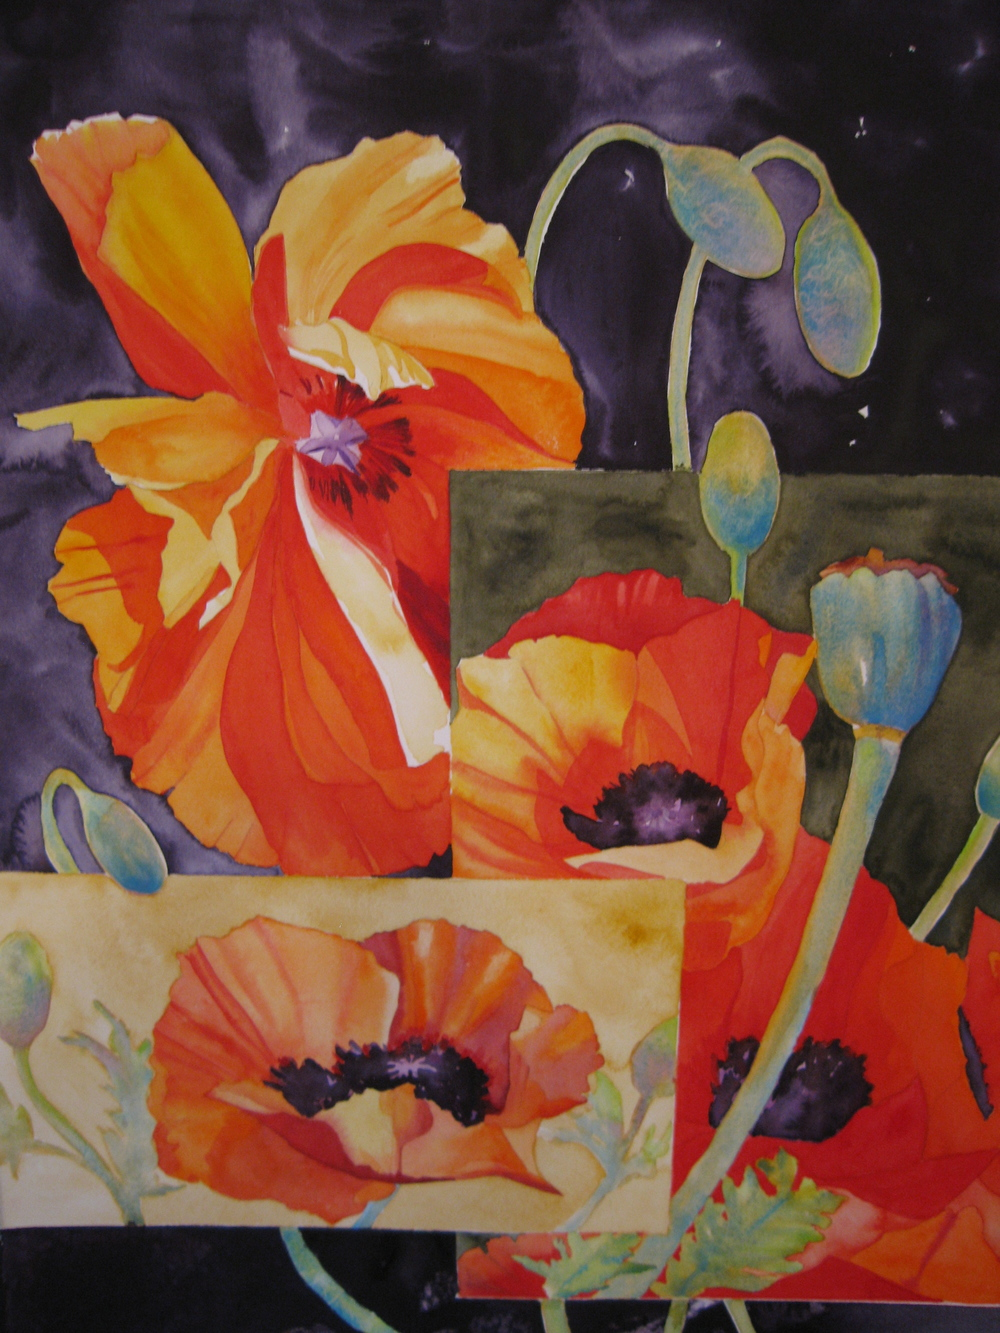 Twilight Poppies #3